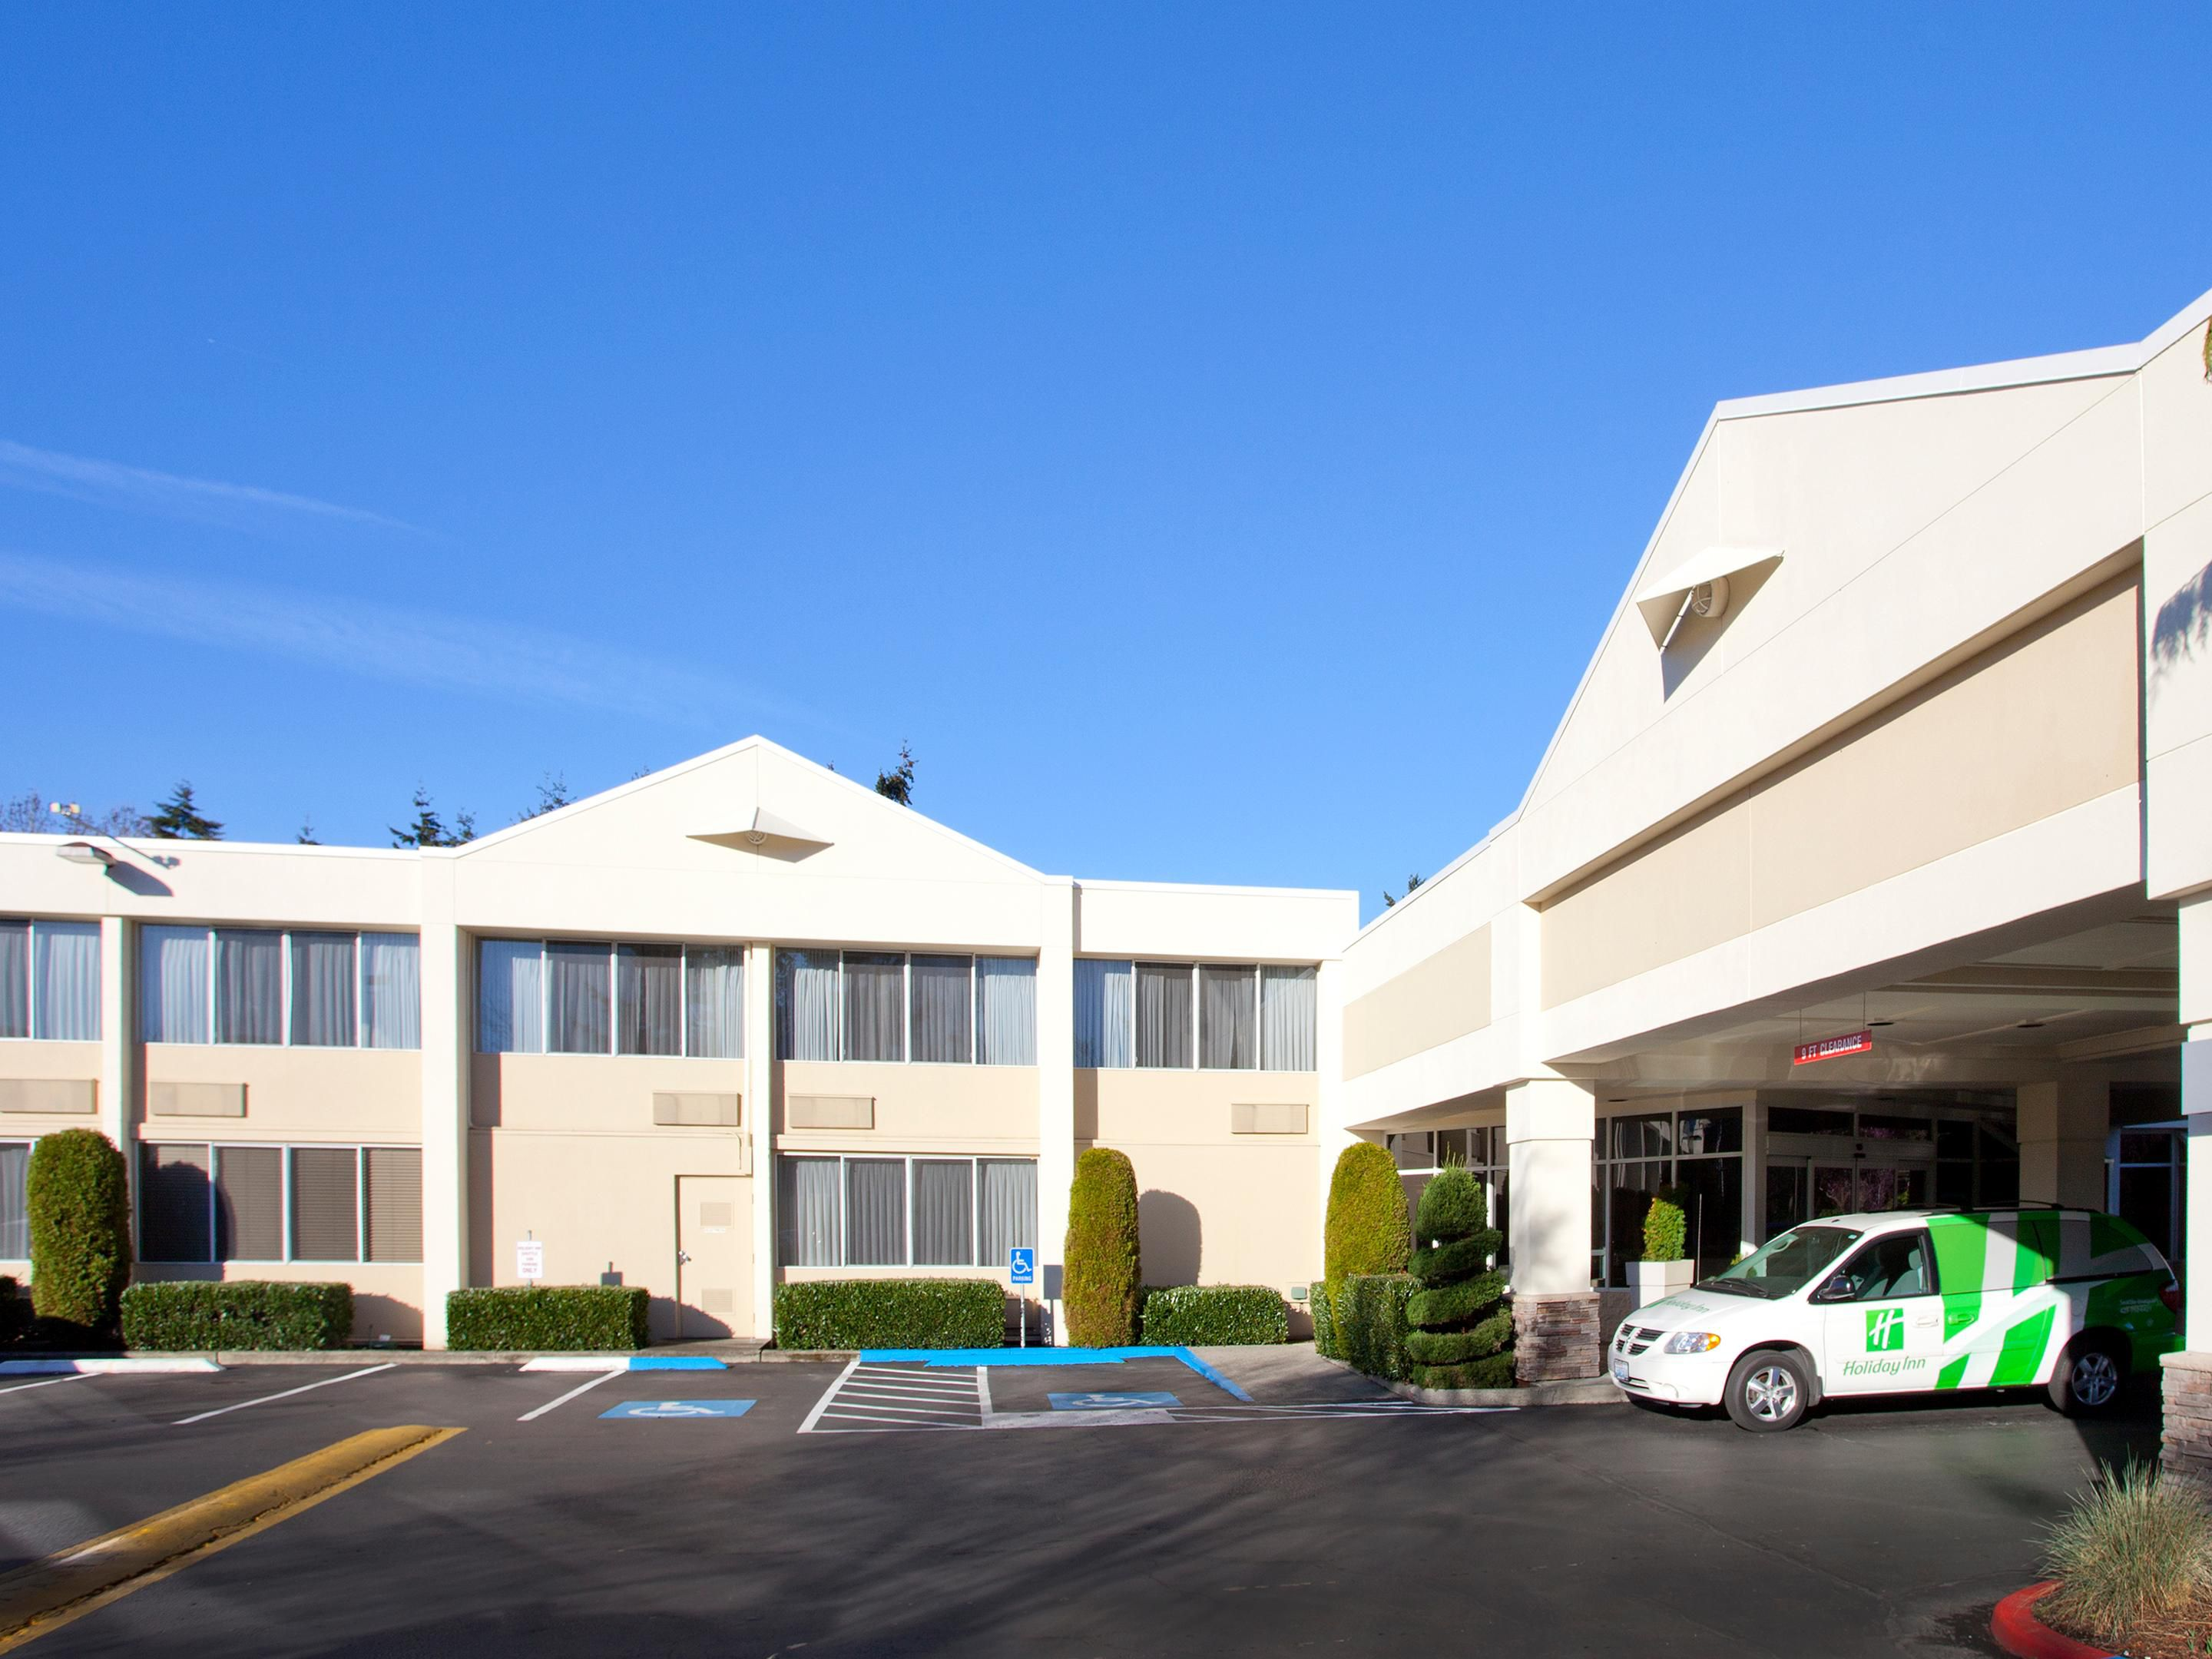 We welcome you to the Holiday Inn Seattle-Issaquah